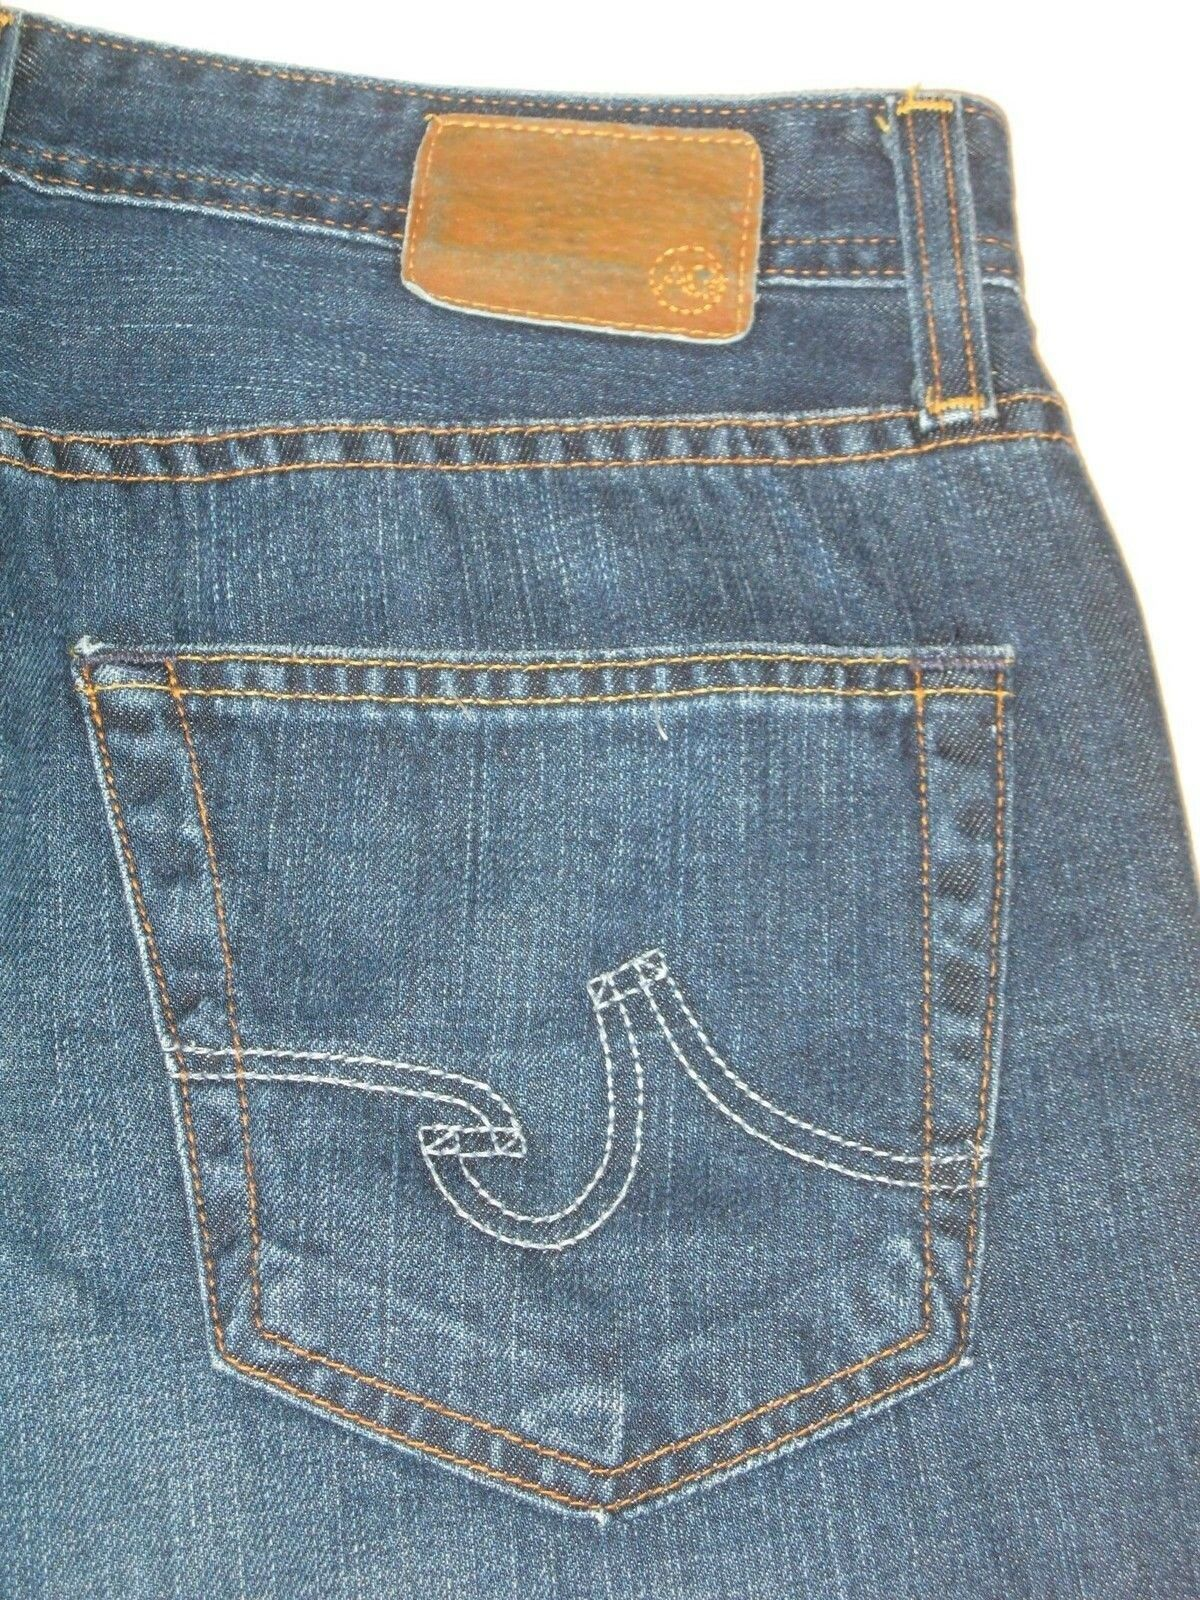 AG ADRIANO goldSCHMIED Mens Hero Jeans Sz 30 X 29 Relaxed 100% Cotton